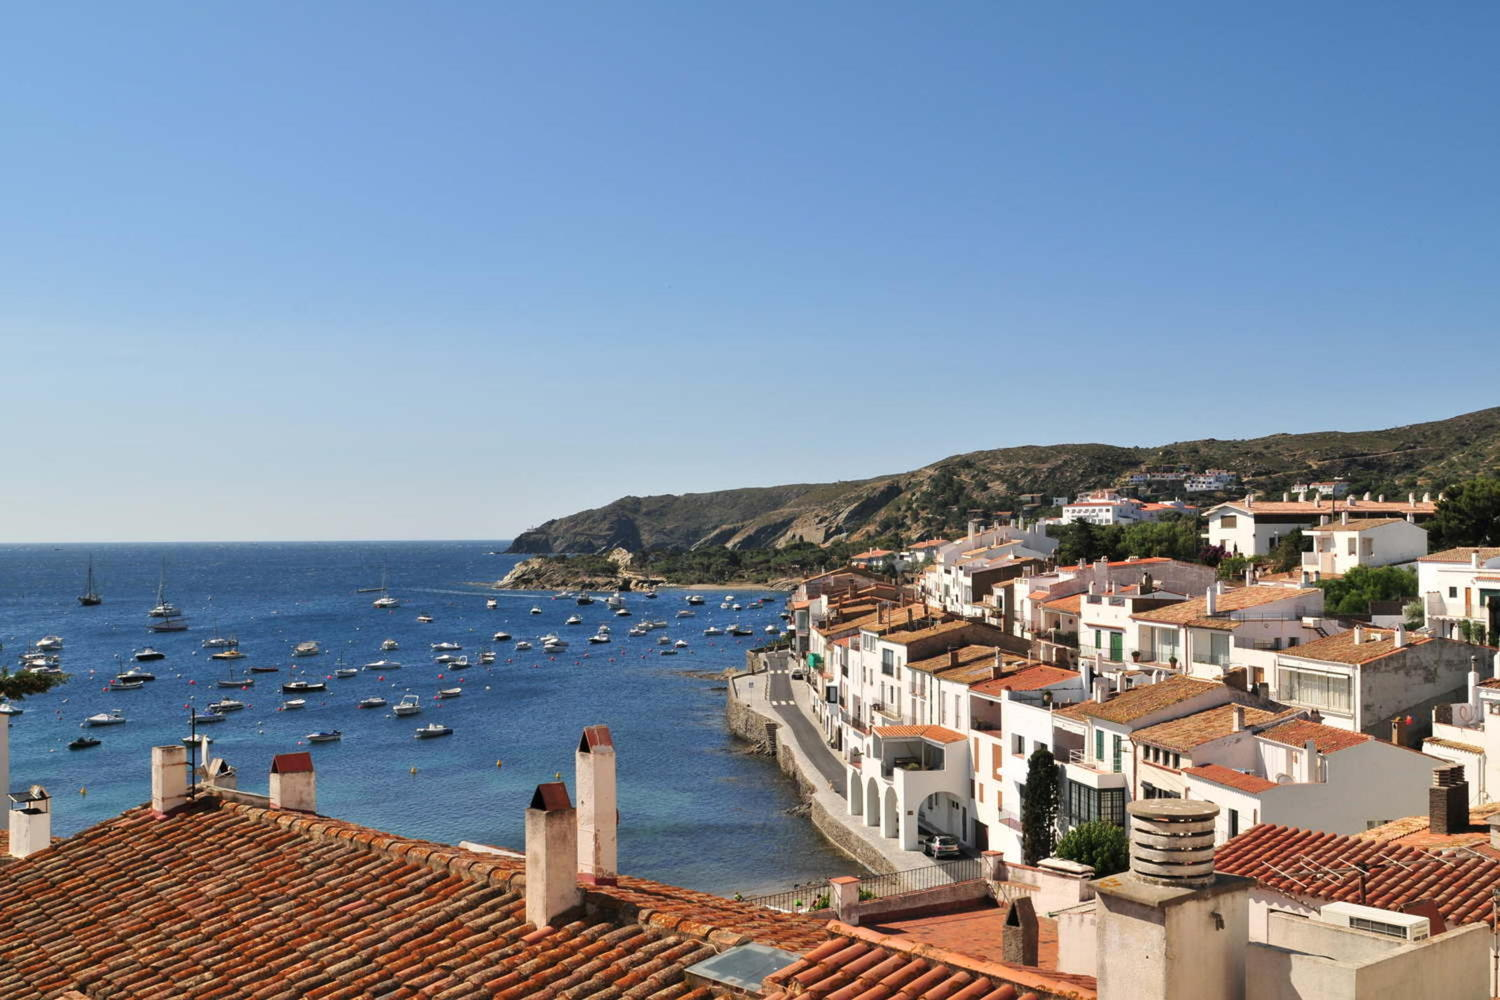 View of the village of Cadaques